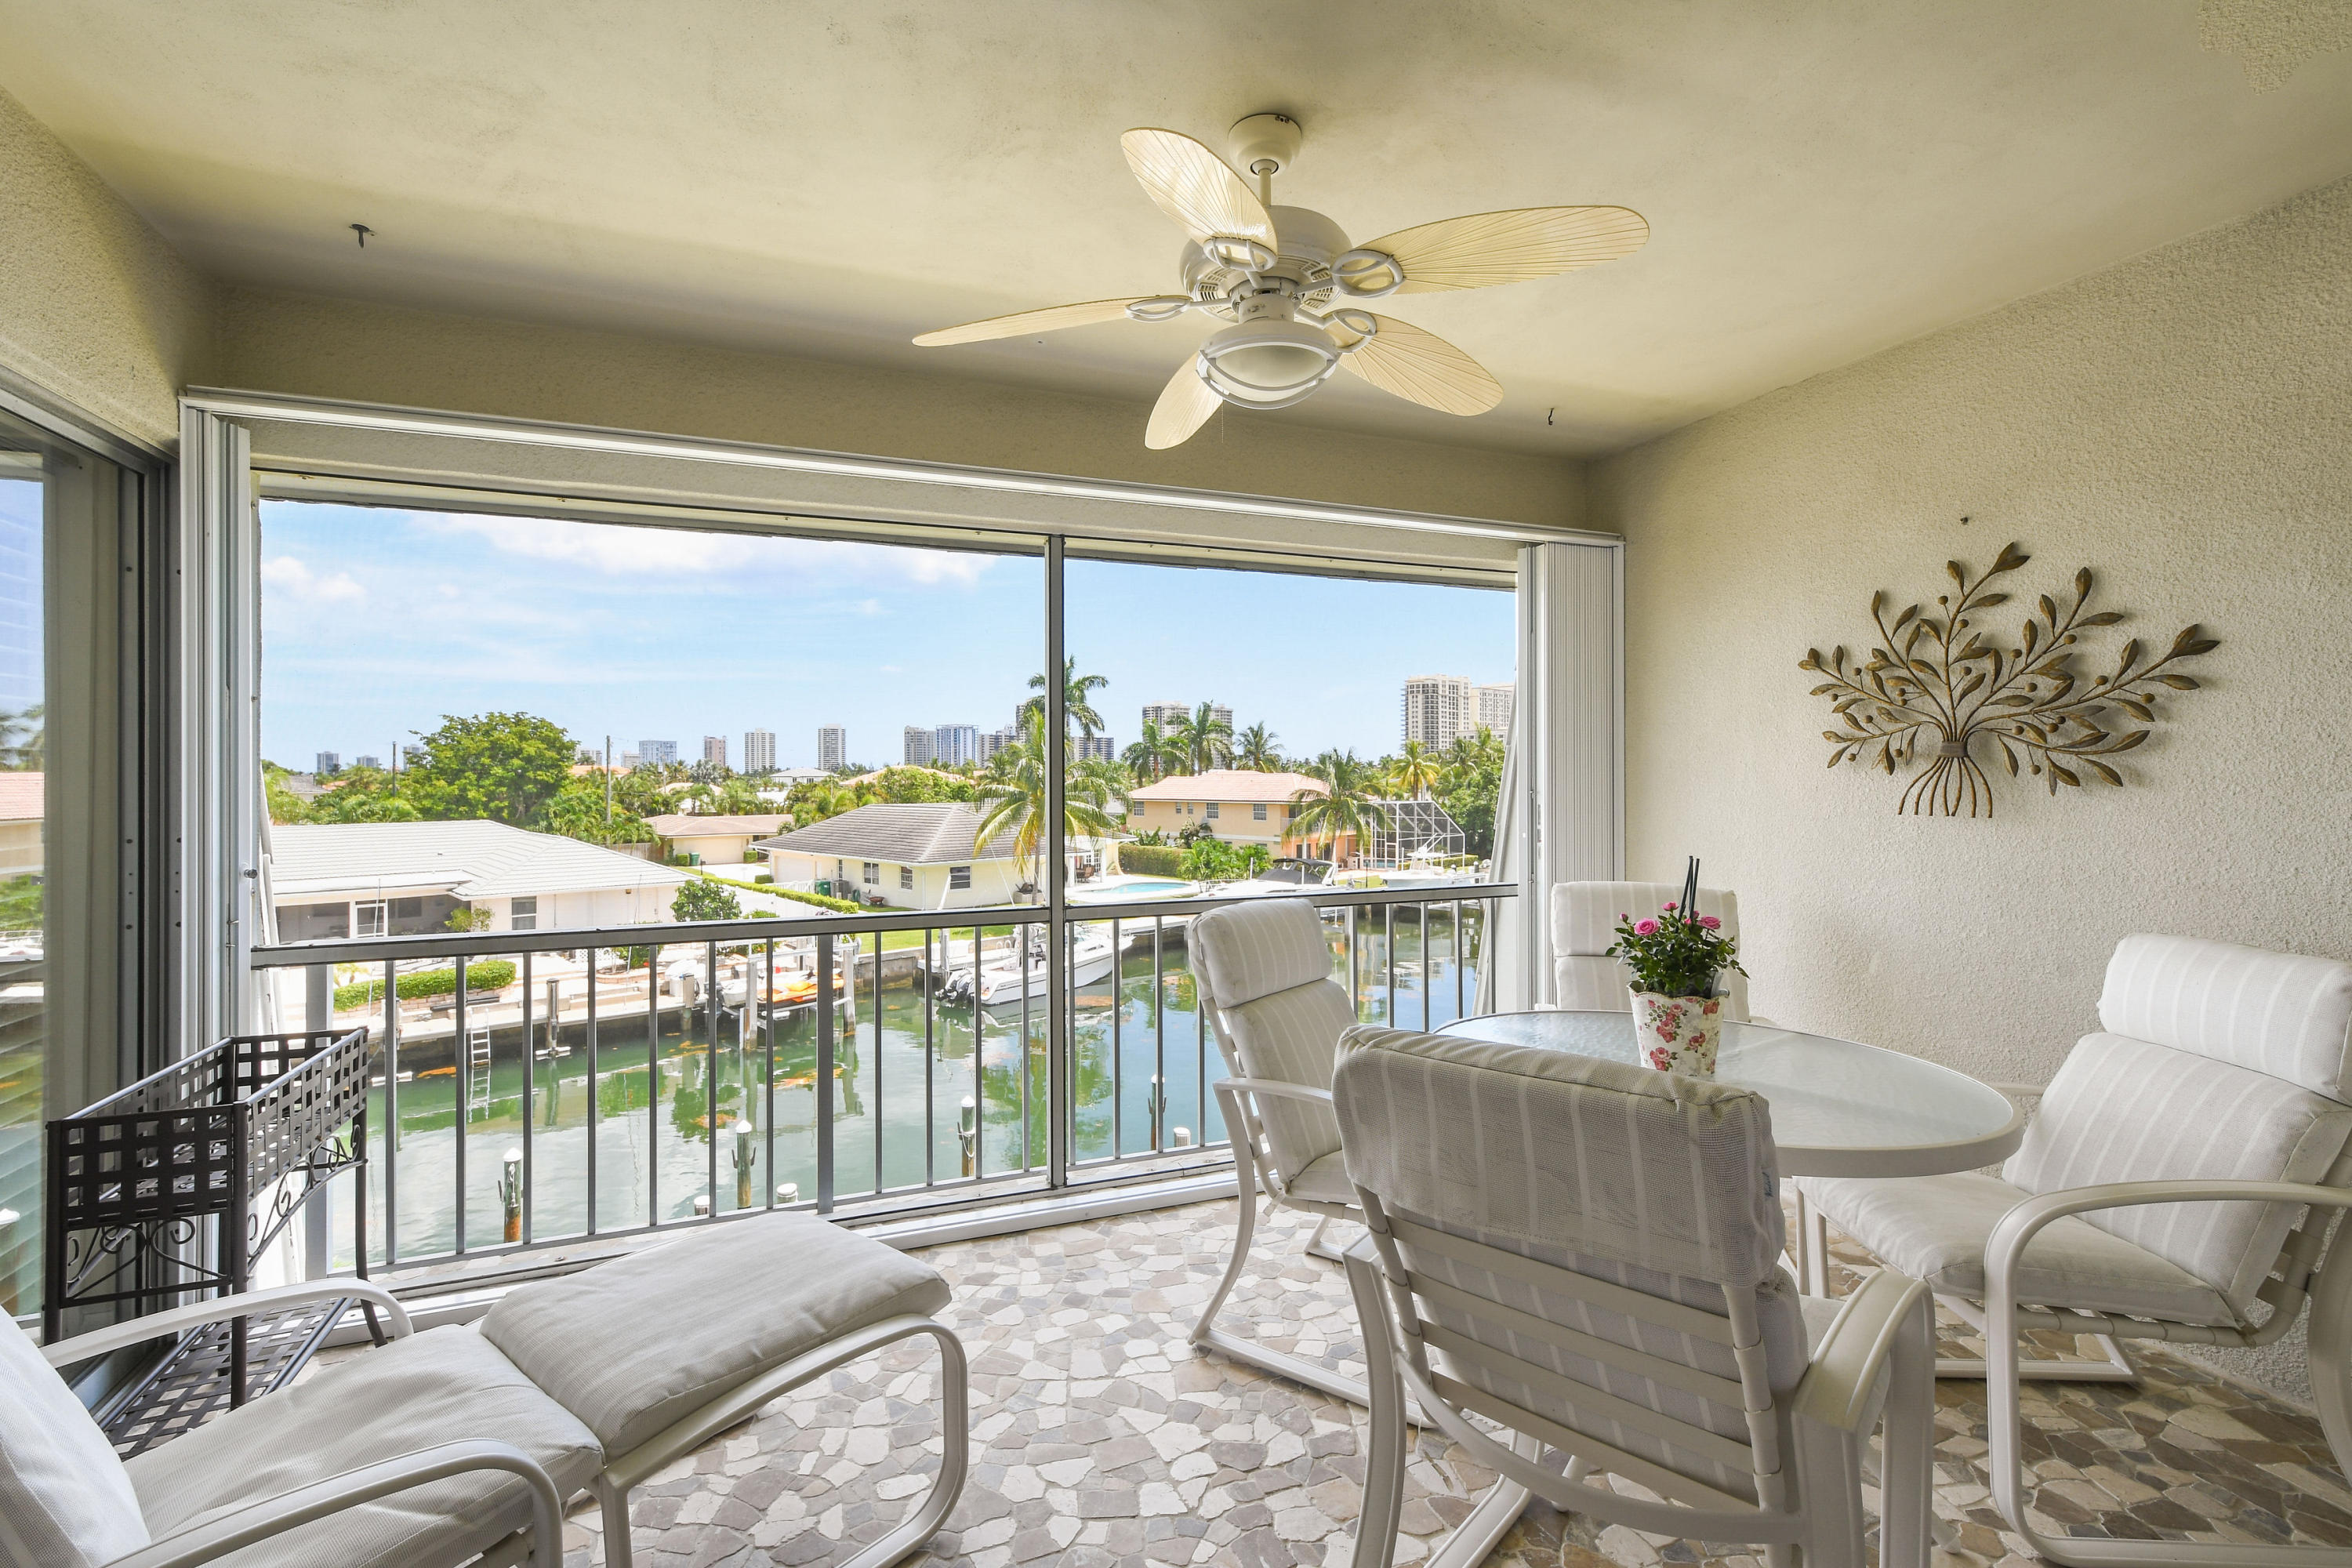 New Home for sale at 1160 Sugar Sands Boulevard in Singer Island